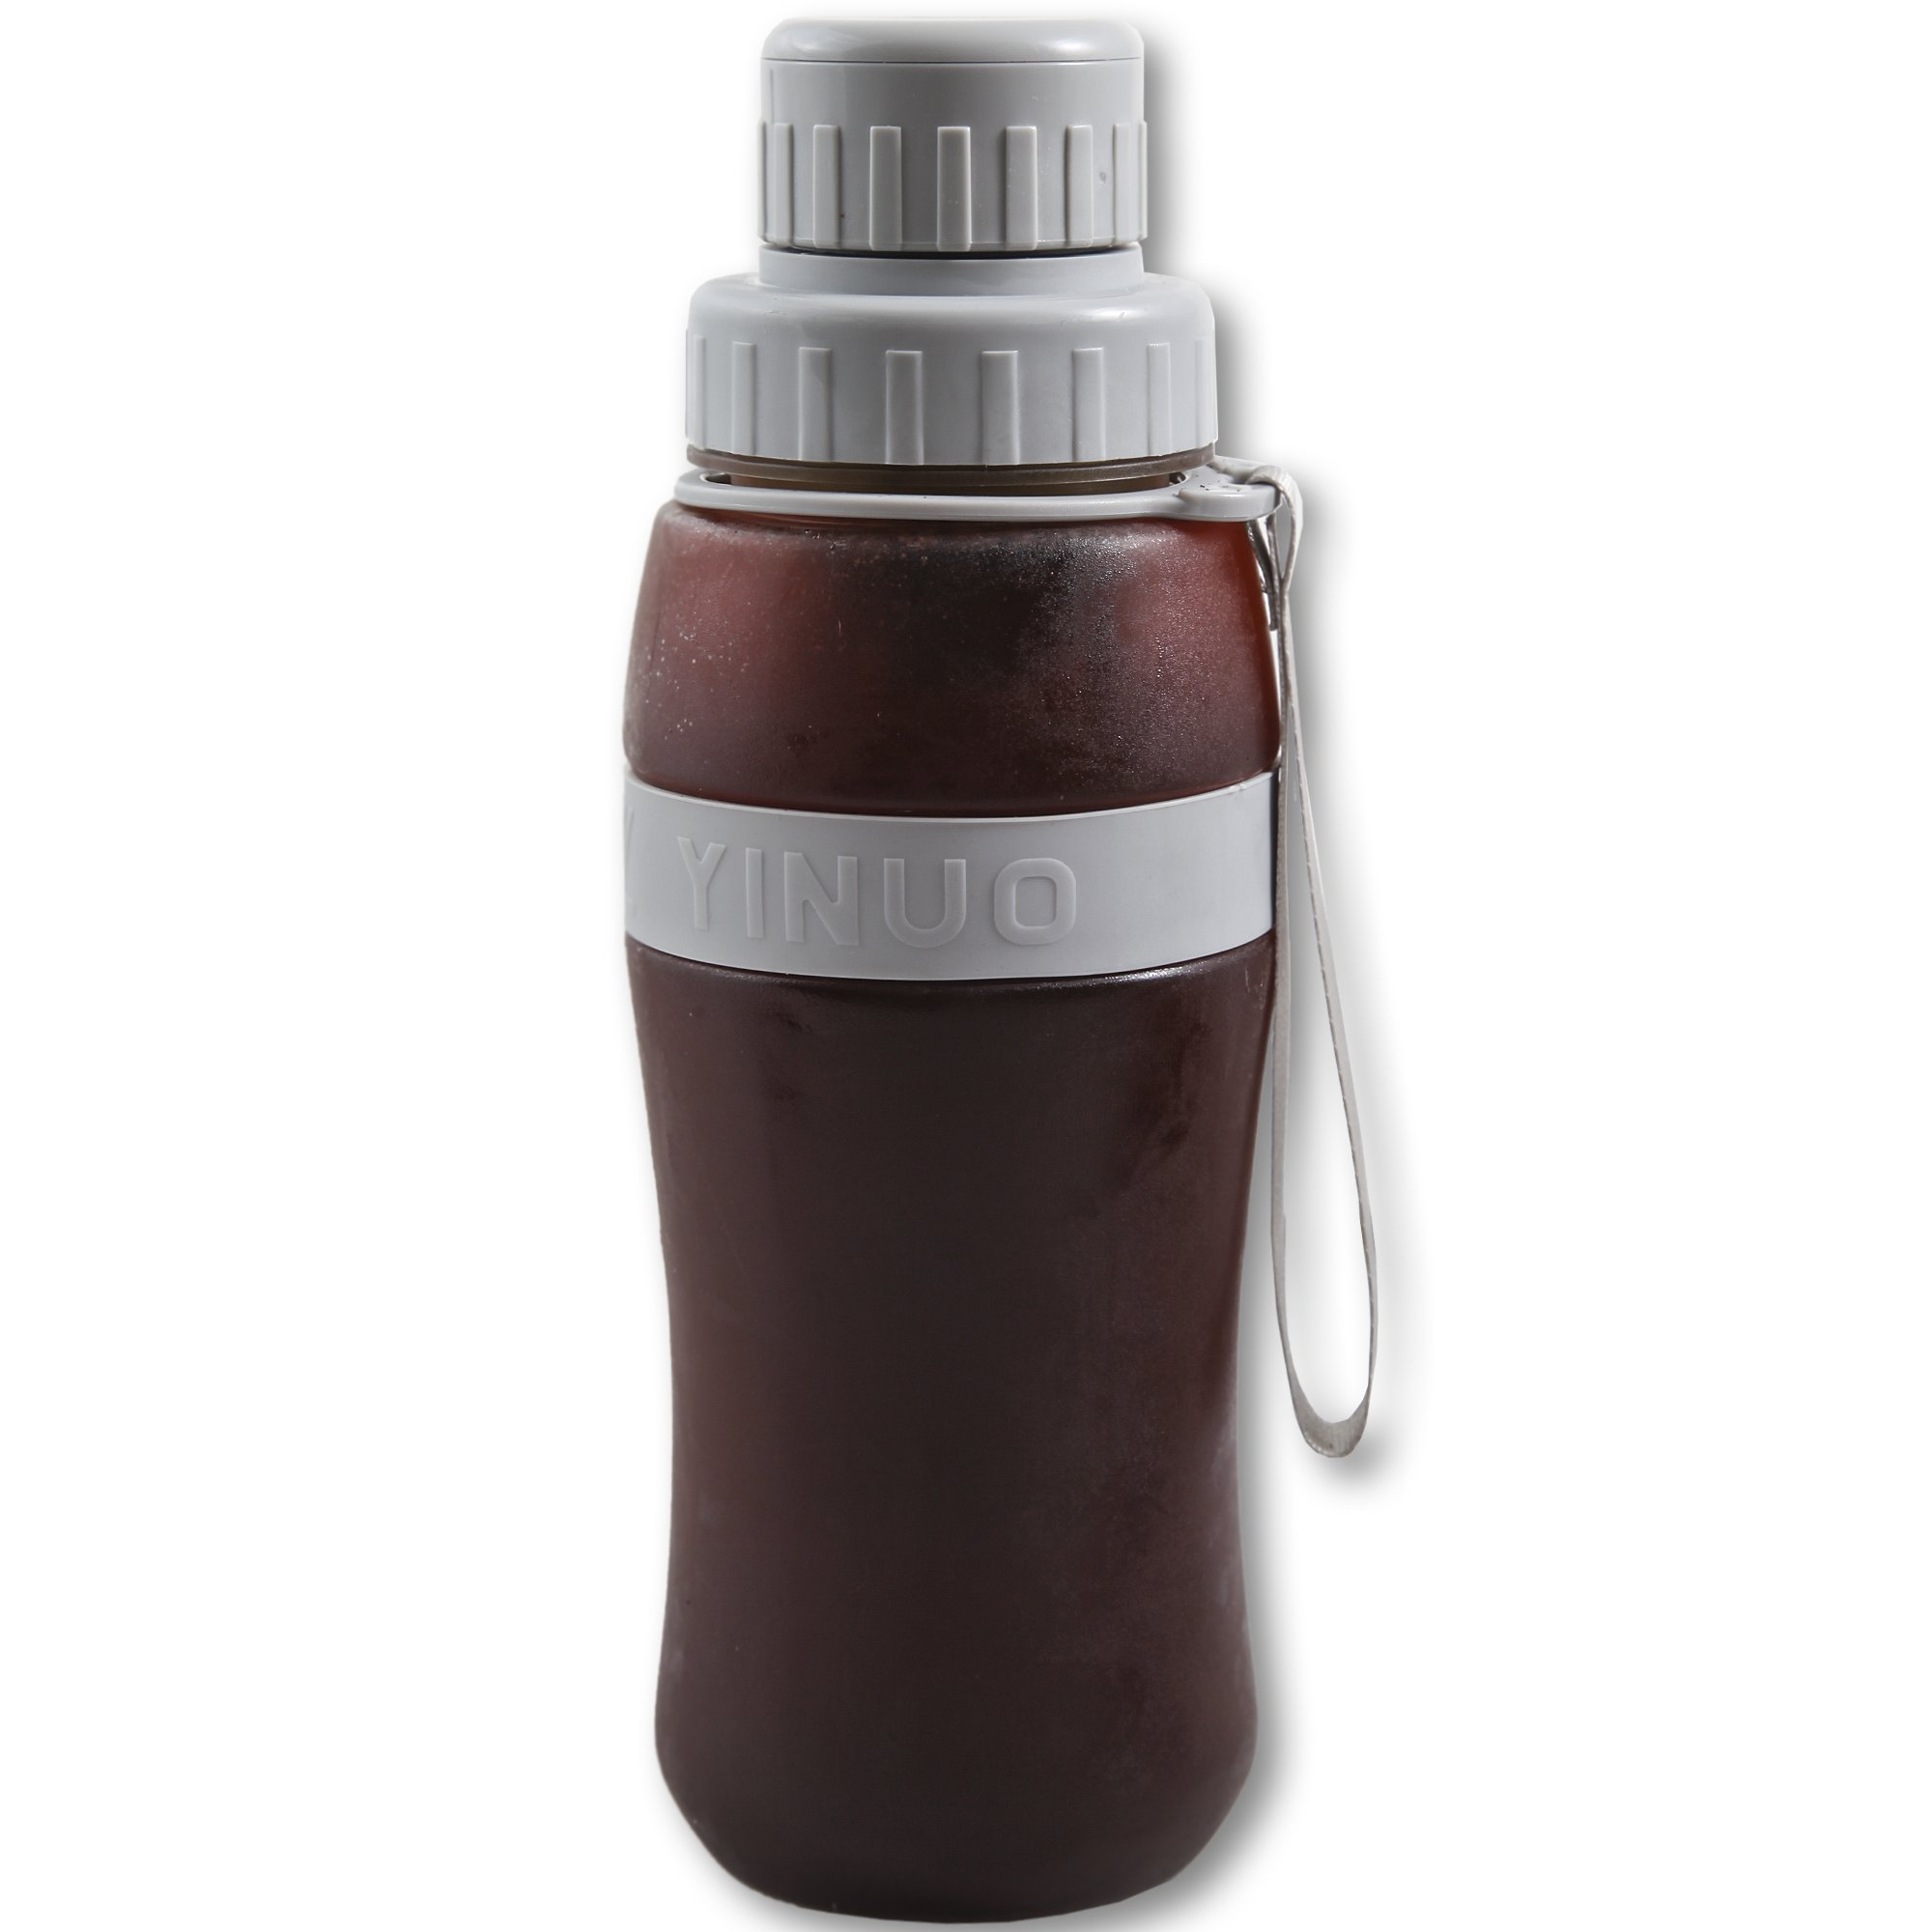 EZE Homegoods Cold Brew Iced Coffee Maker & Iced Tea Maker - 28 Ounces in Convenient Travel Mug with airtight lid by EZE Cold Brew Iced Coffee Maker